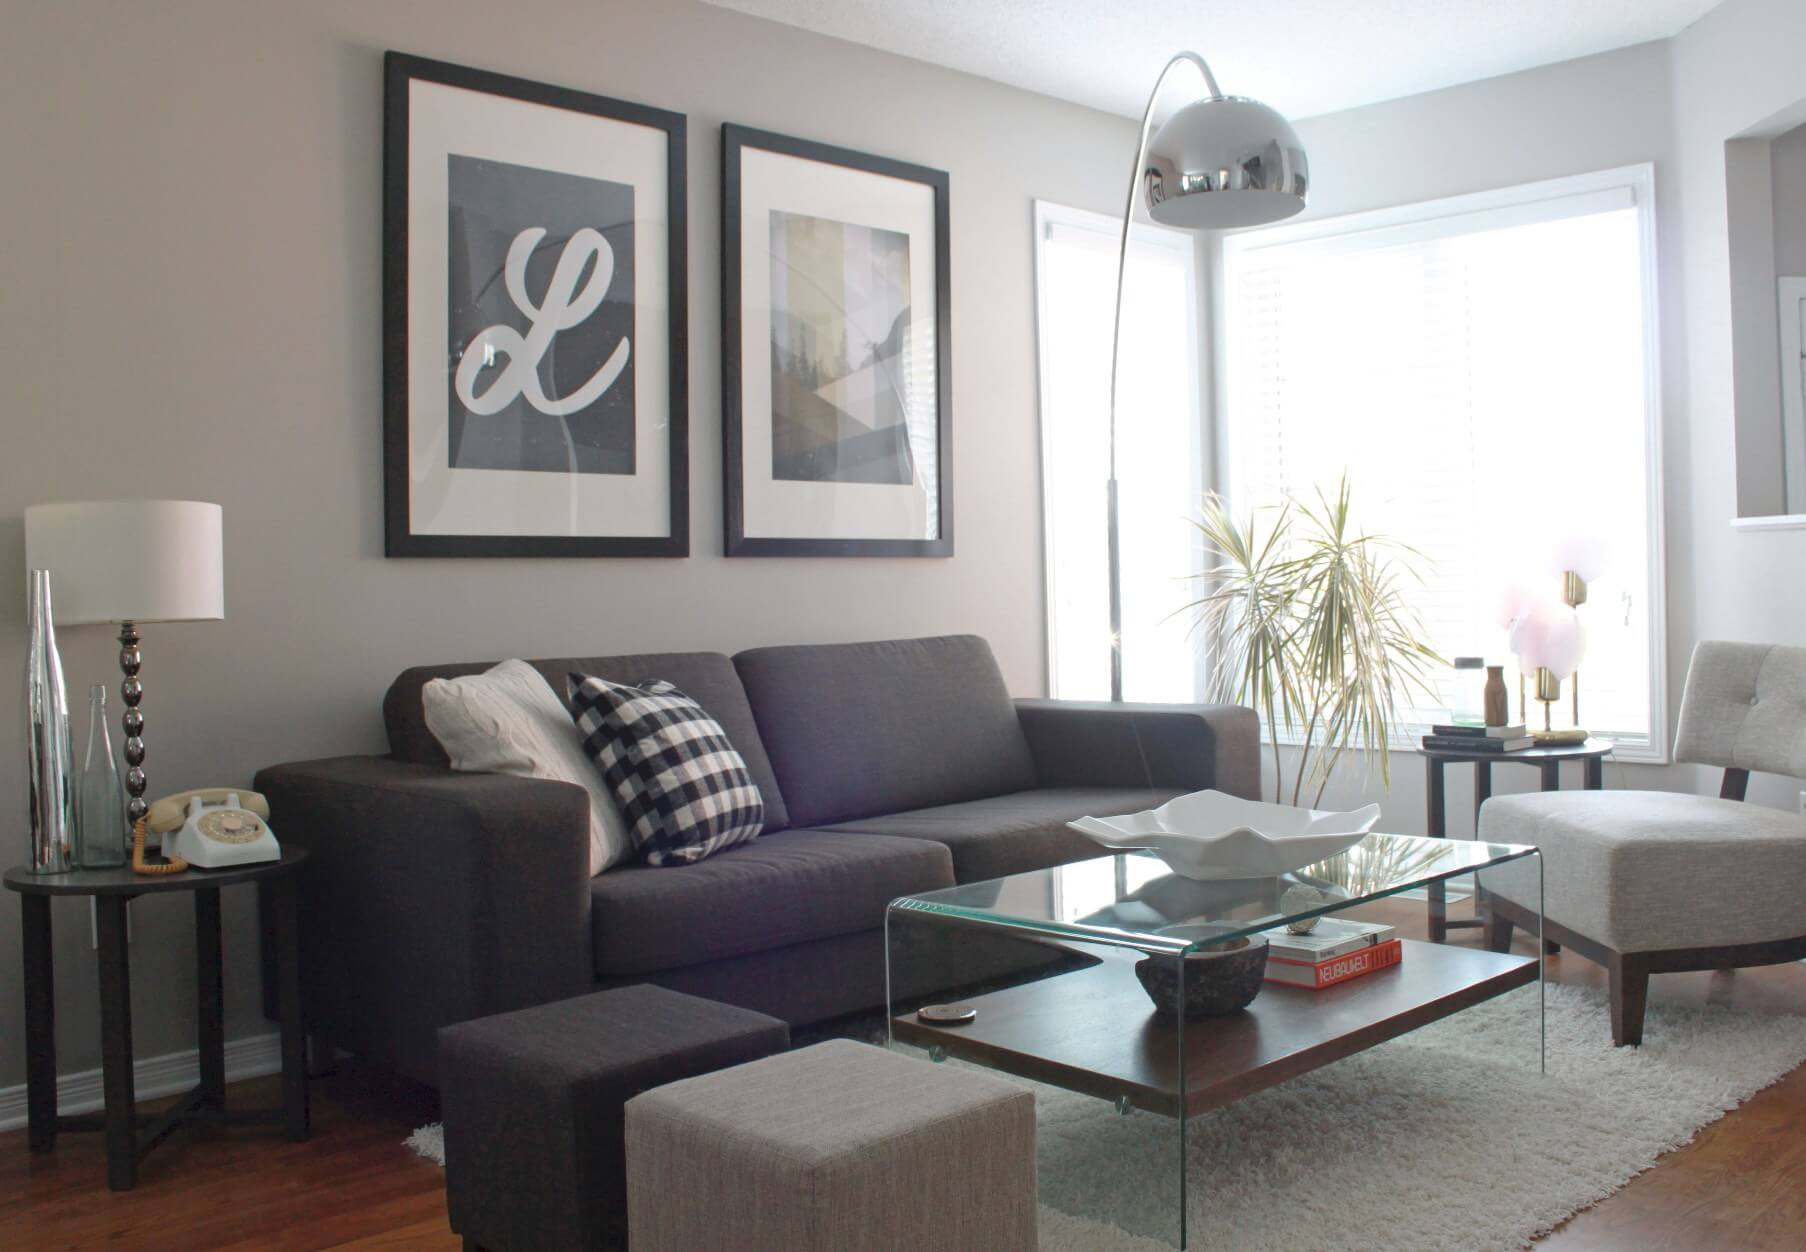 Small living room in neutral colors